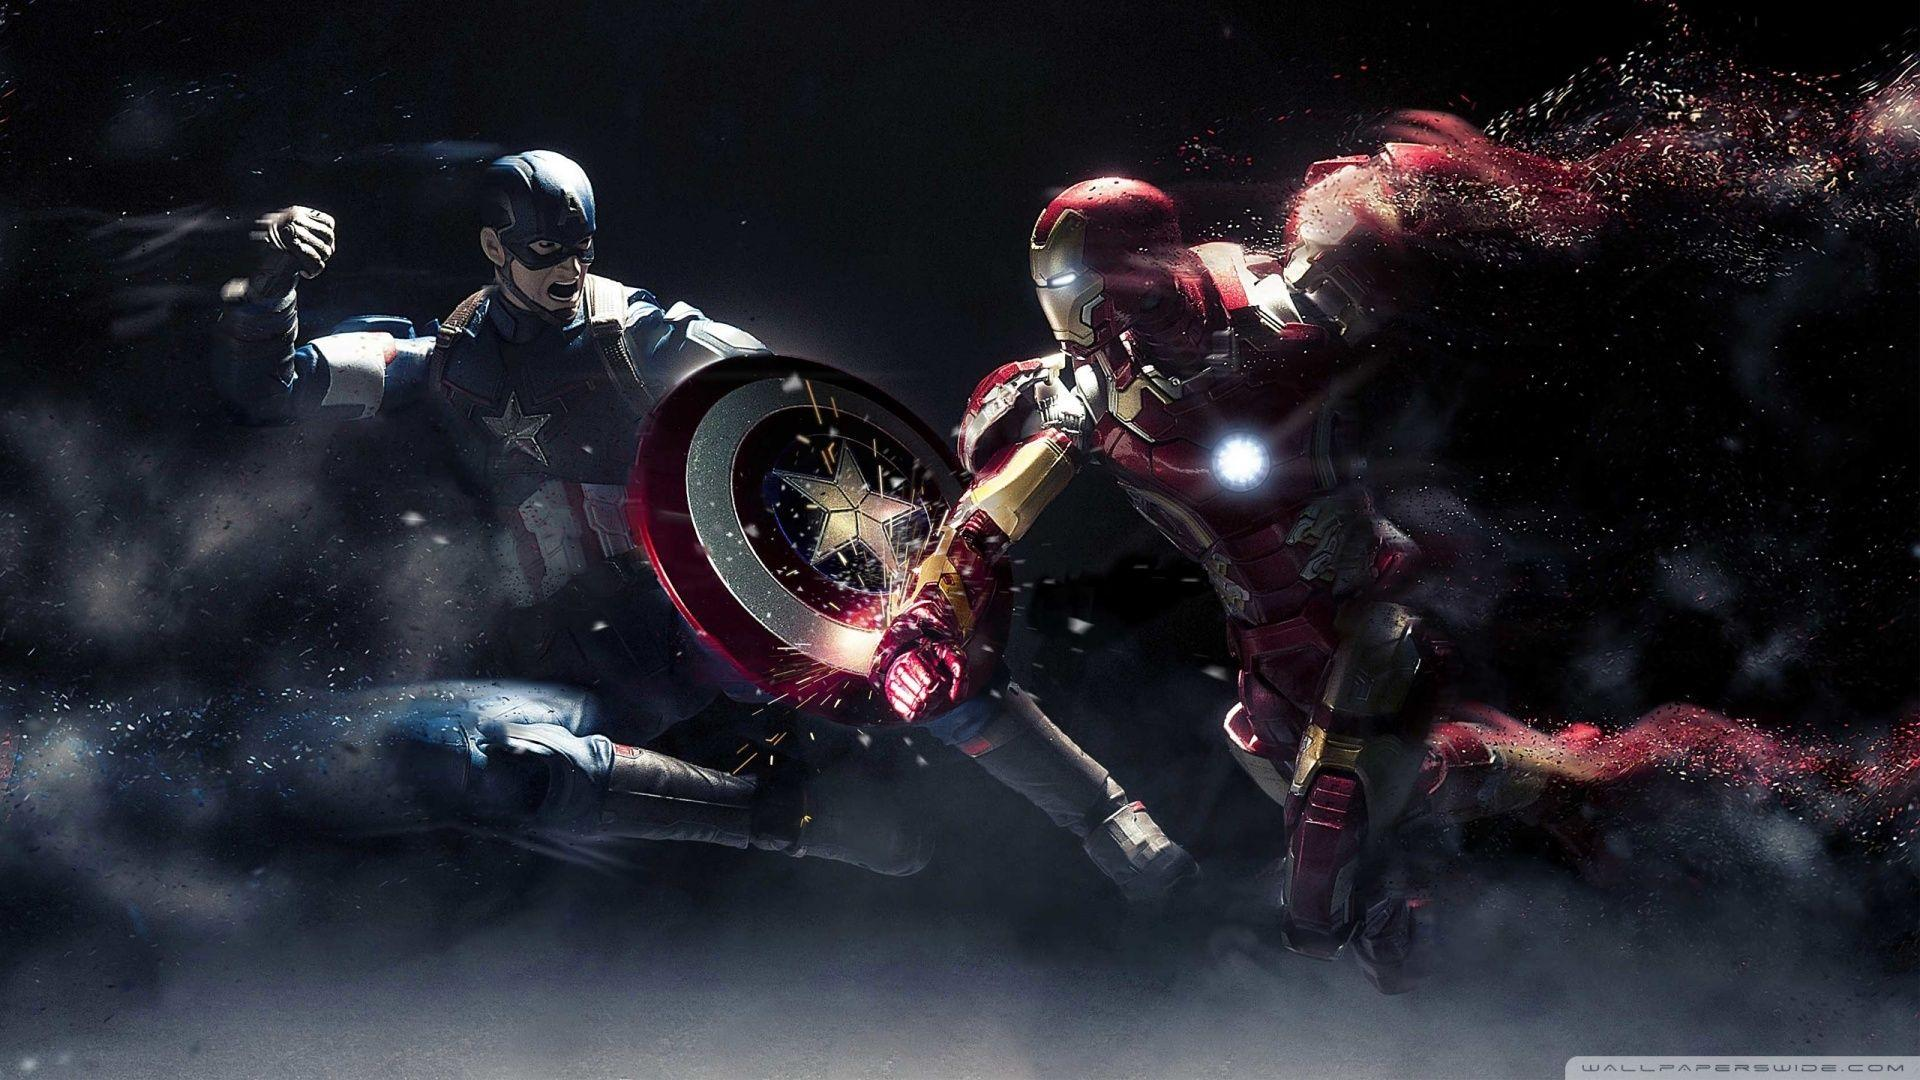 Iron Man Vs Captain America Wallpapers Wallpaper Cave